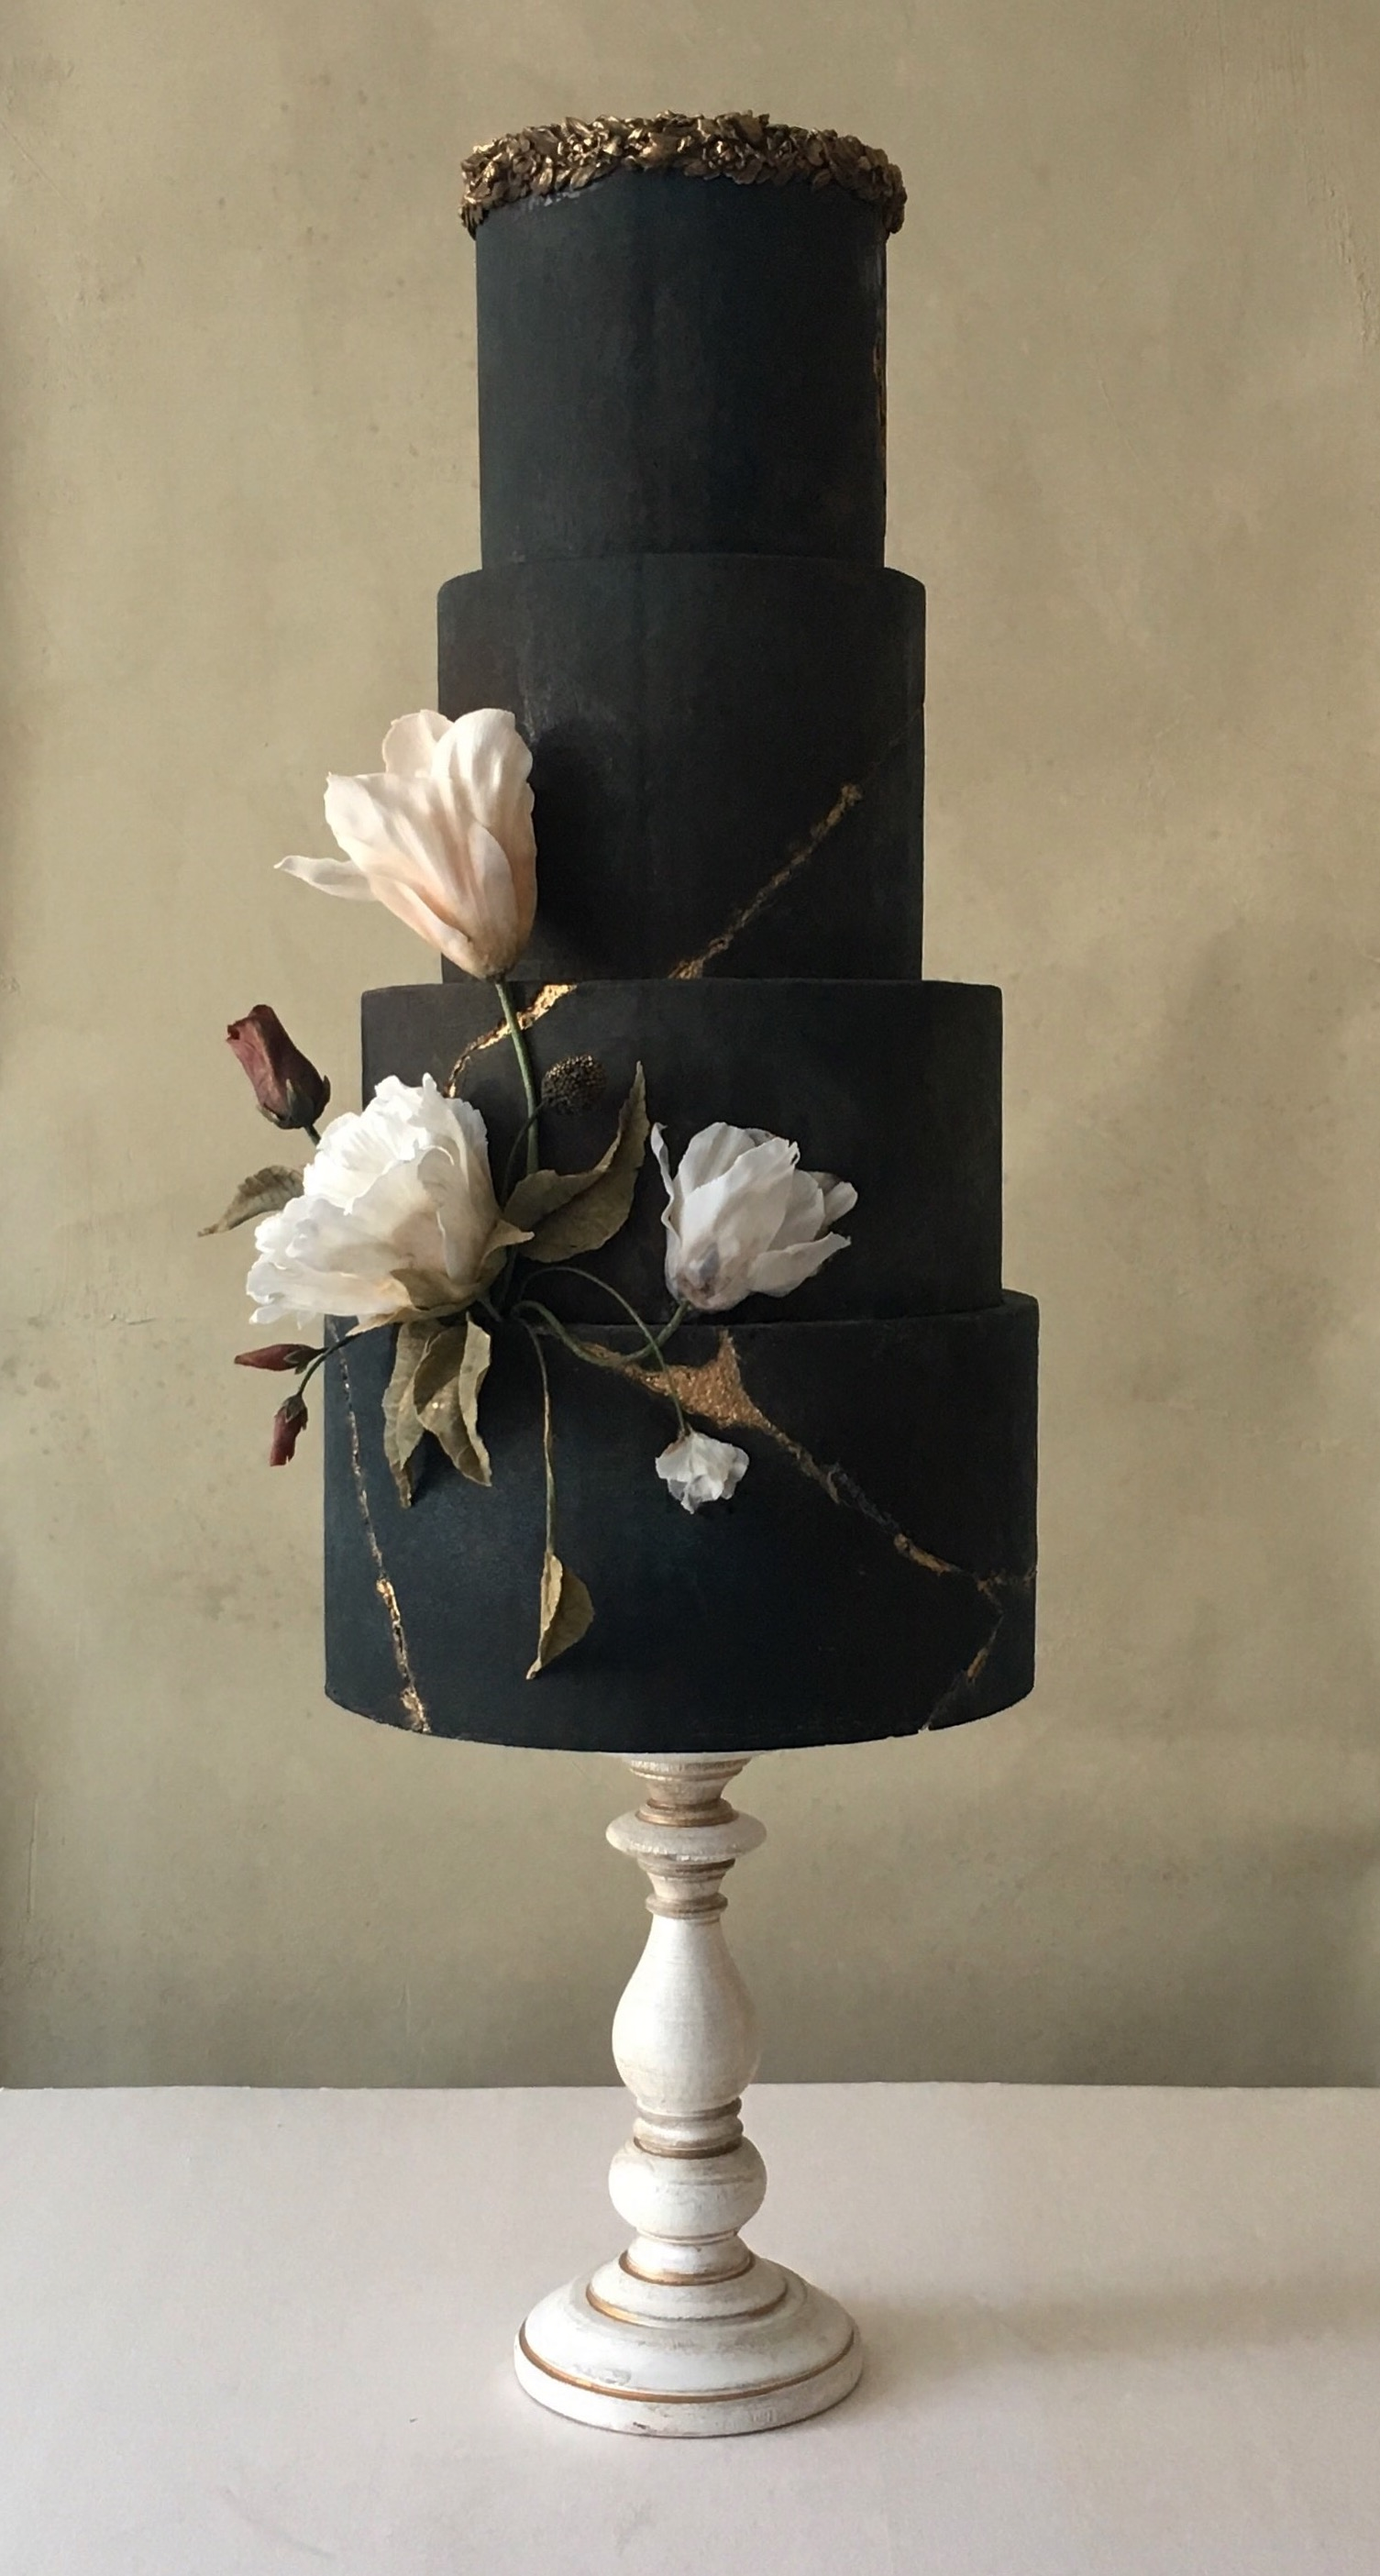 All black cake with center sugar flower stems